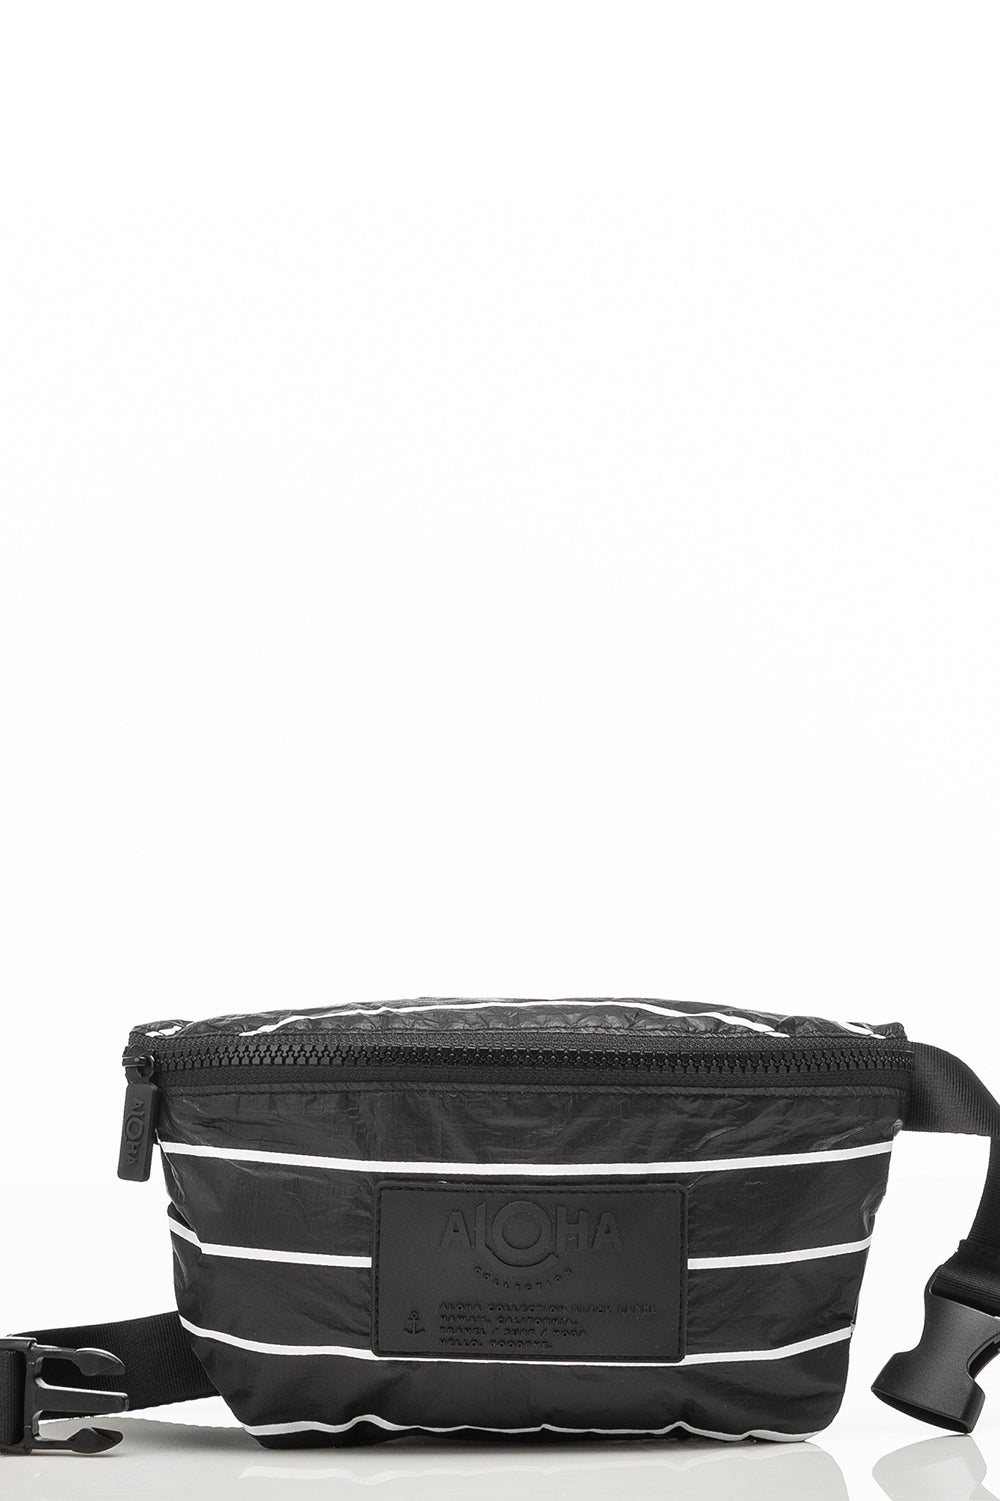 ALOHA Collection Mini Hip Pack in White Pinstripe on Black